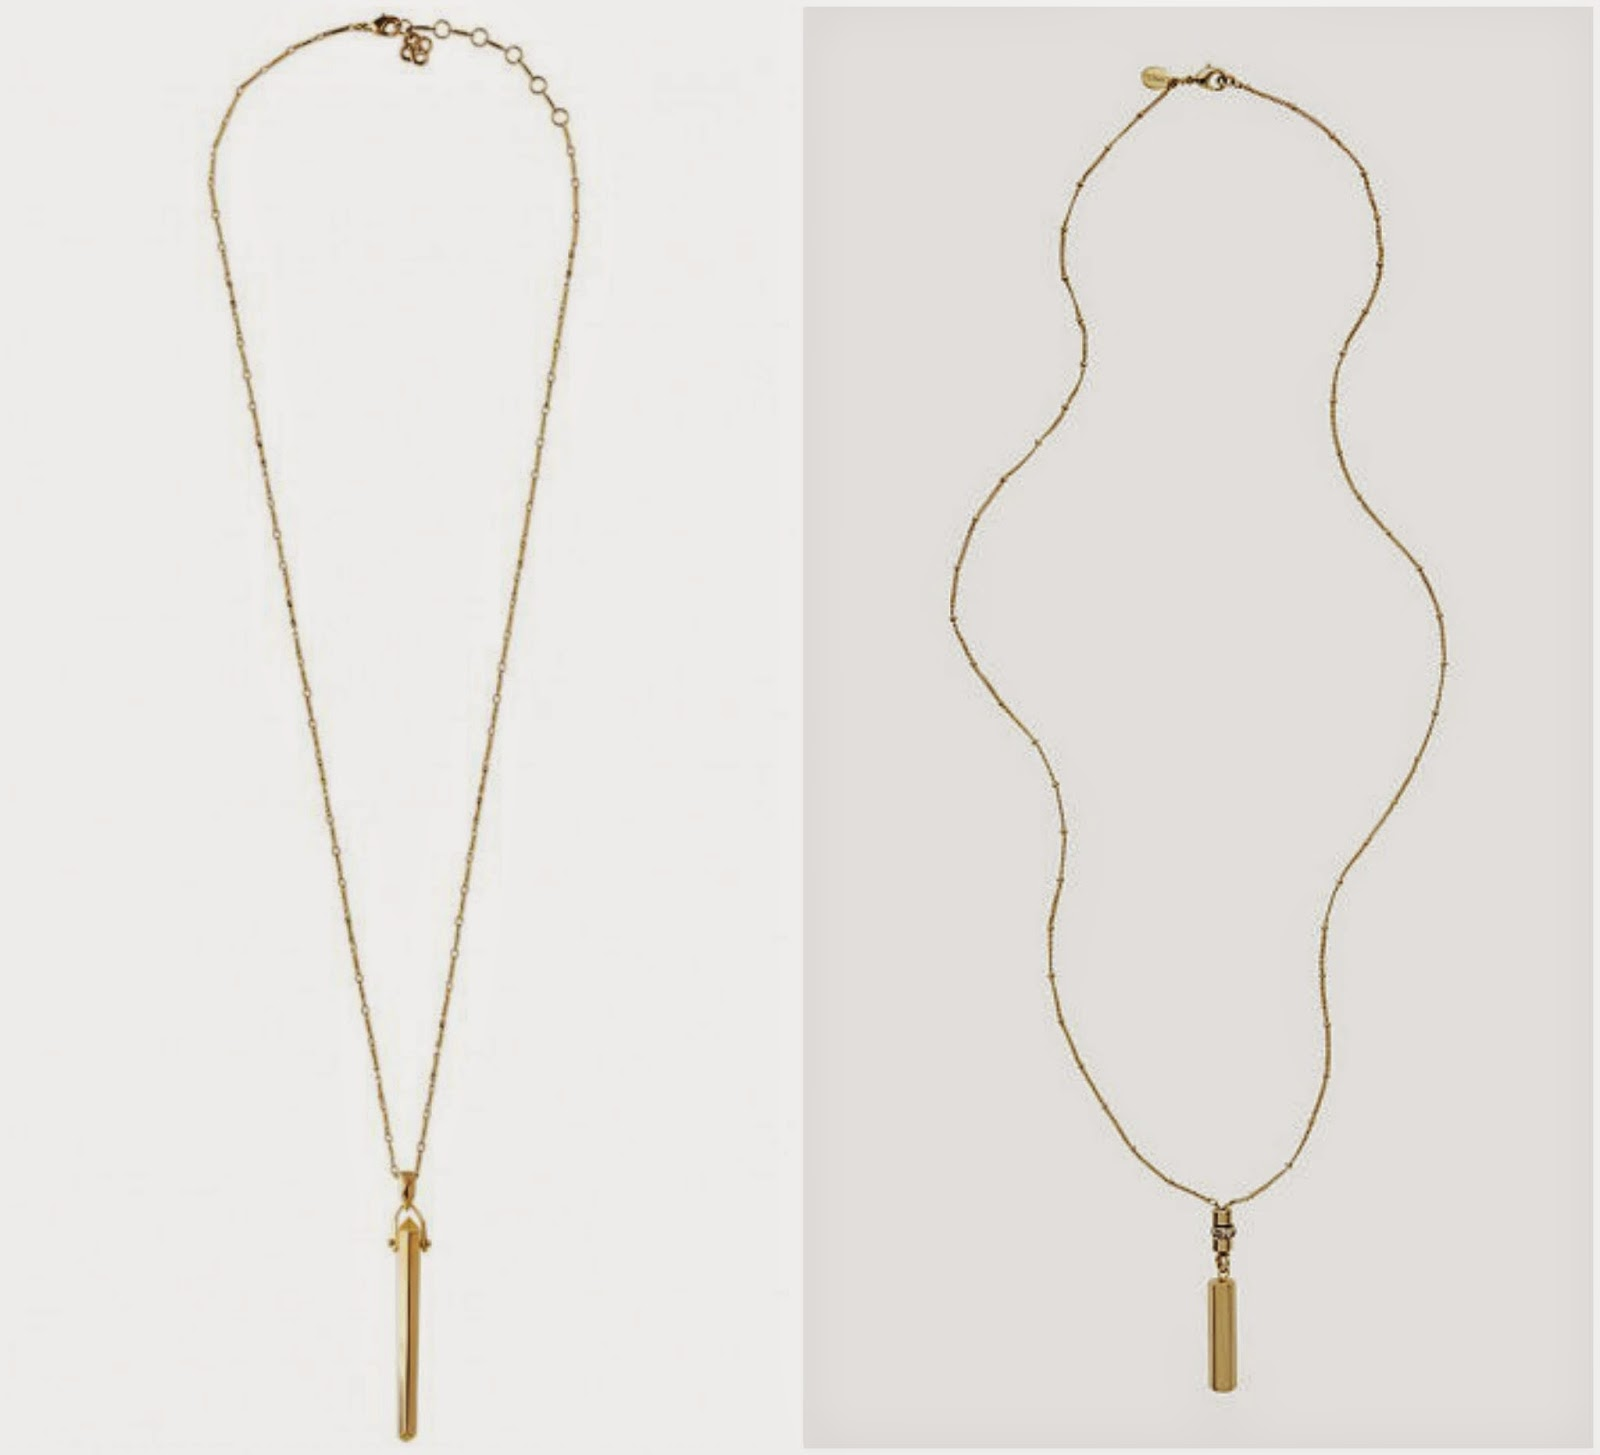 Stella & Dot Rebel necklace budget option, affordable version